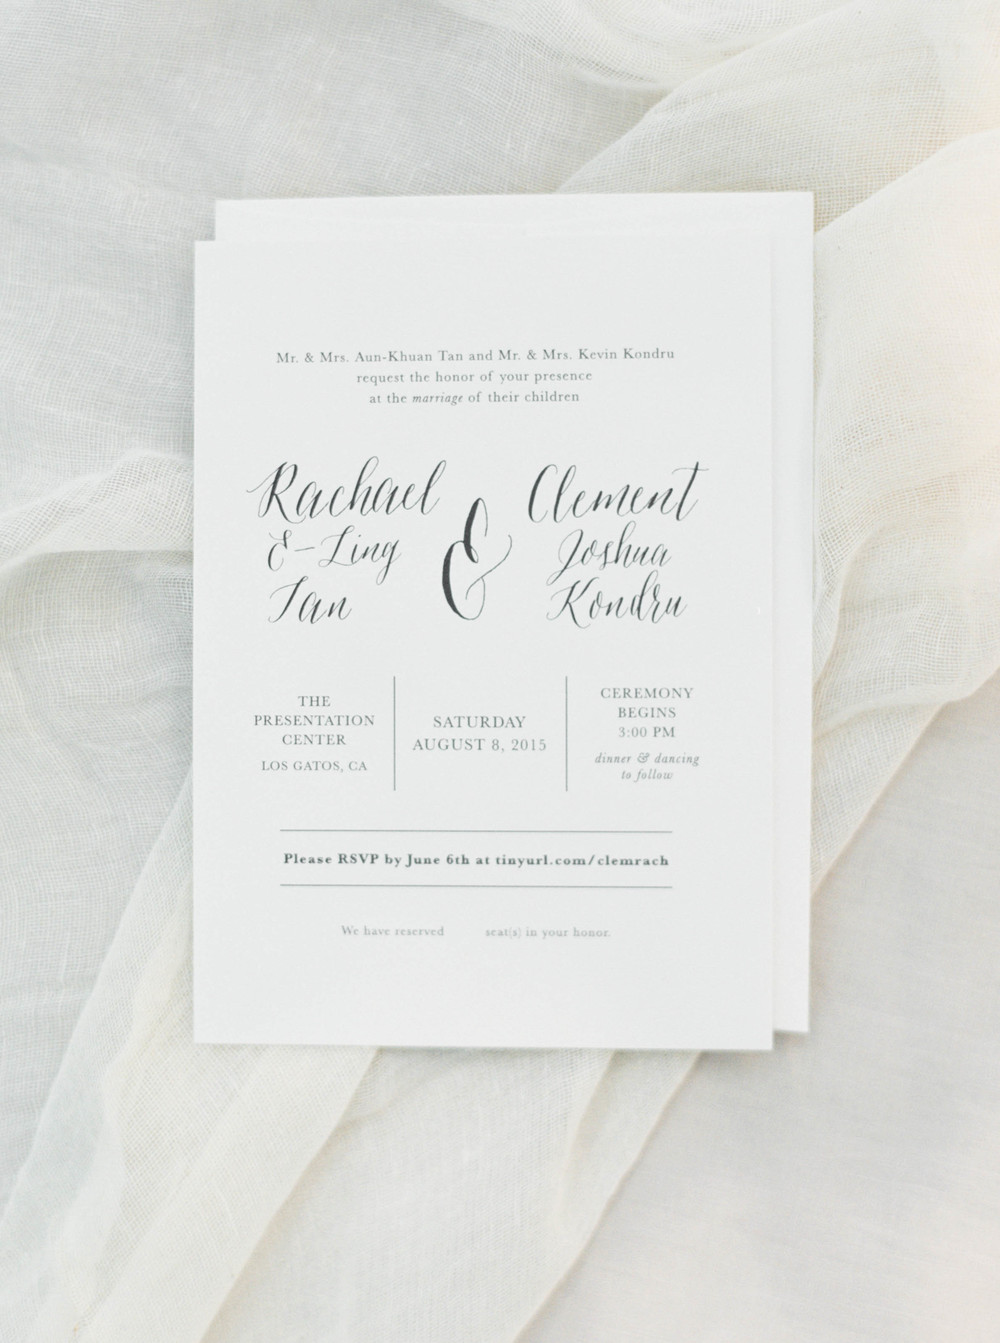 Rachael & Clement - Presentation Center_Wedding - 895.jpg